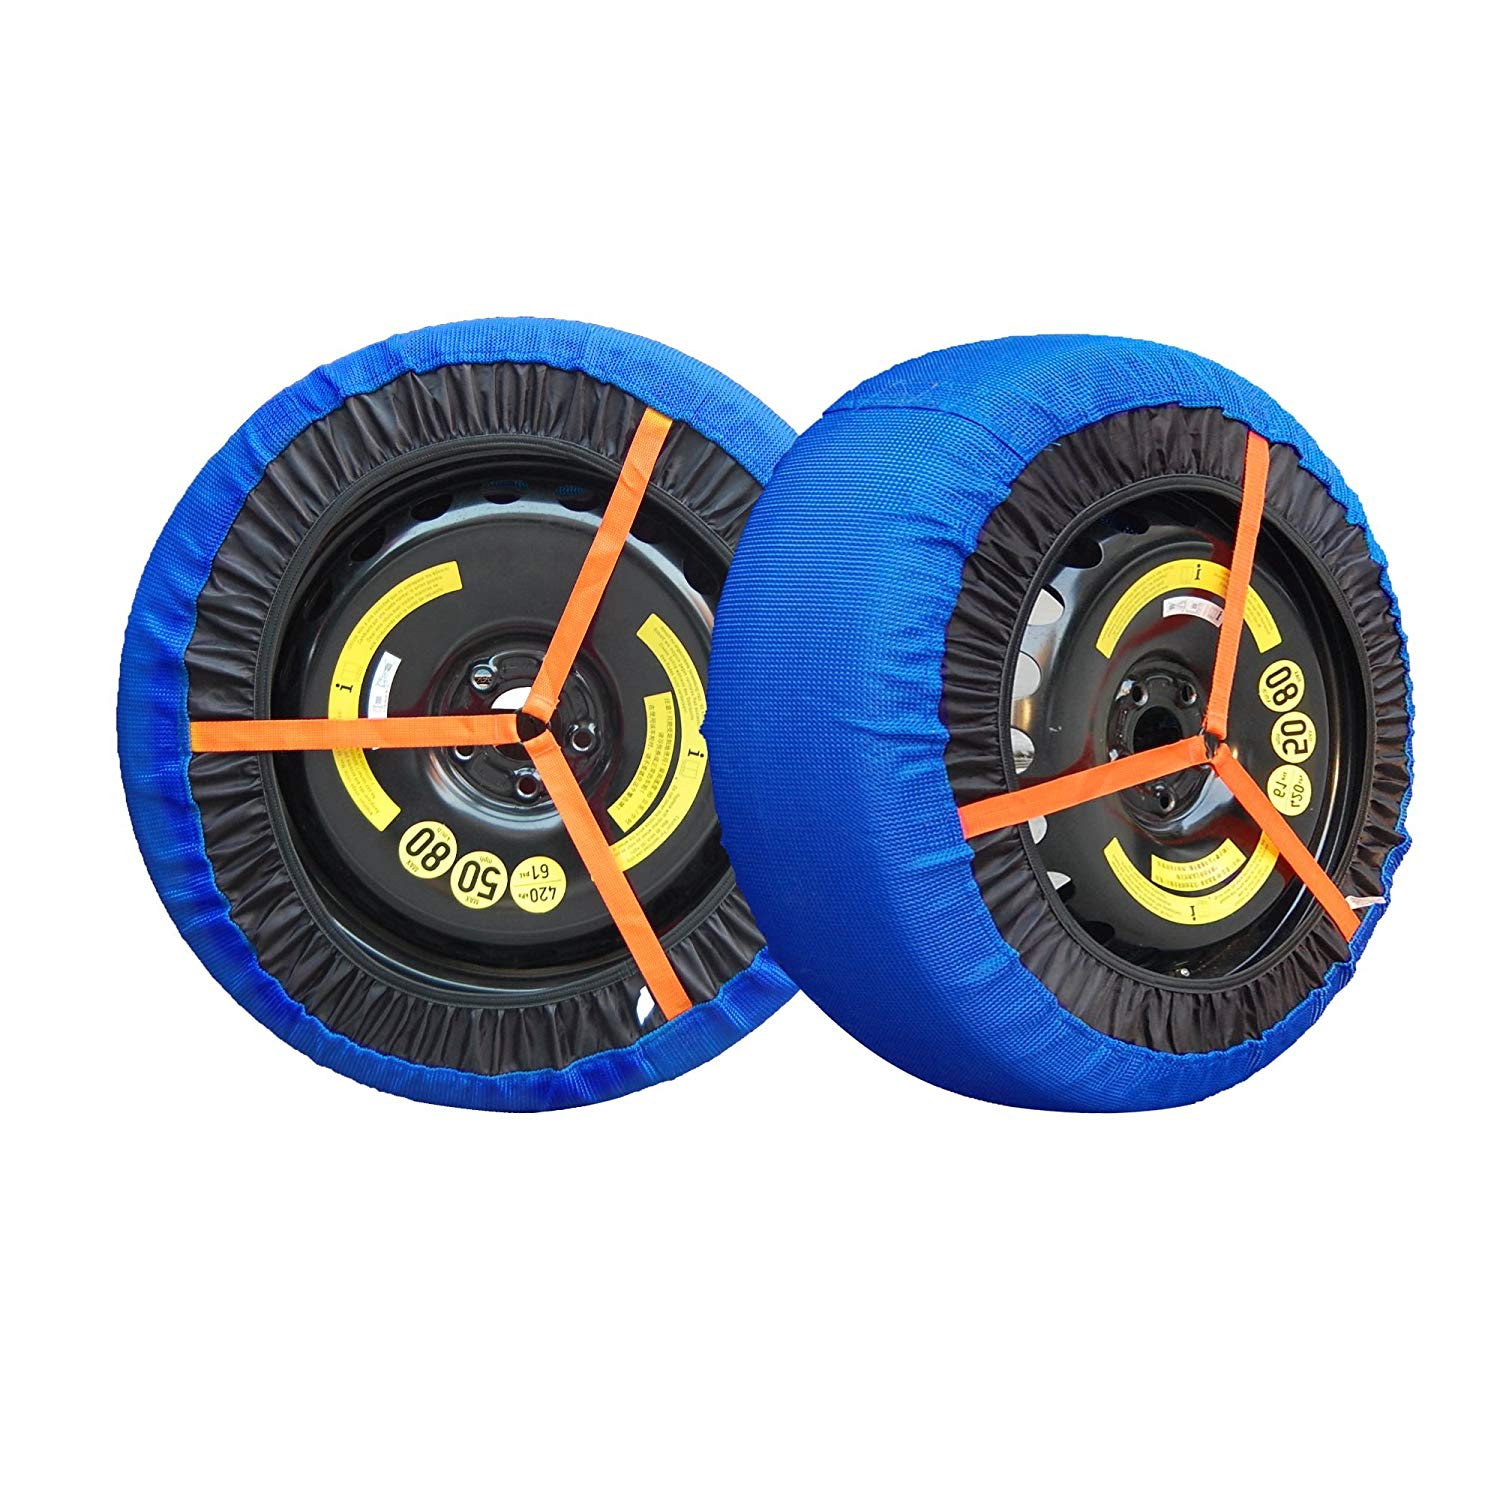 Buy Truck Claw Emergency Tire Traction For Light Amp Heavy